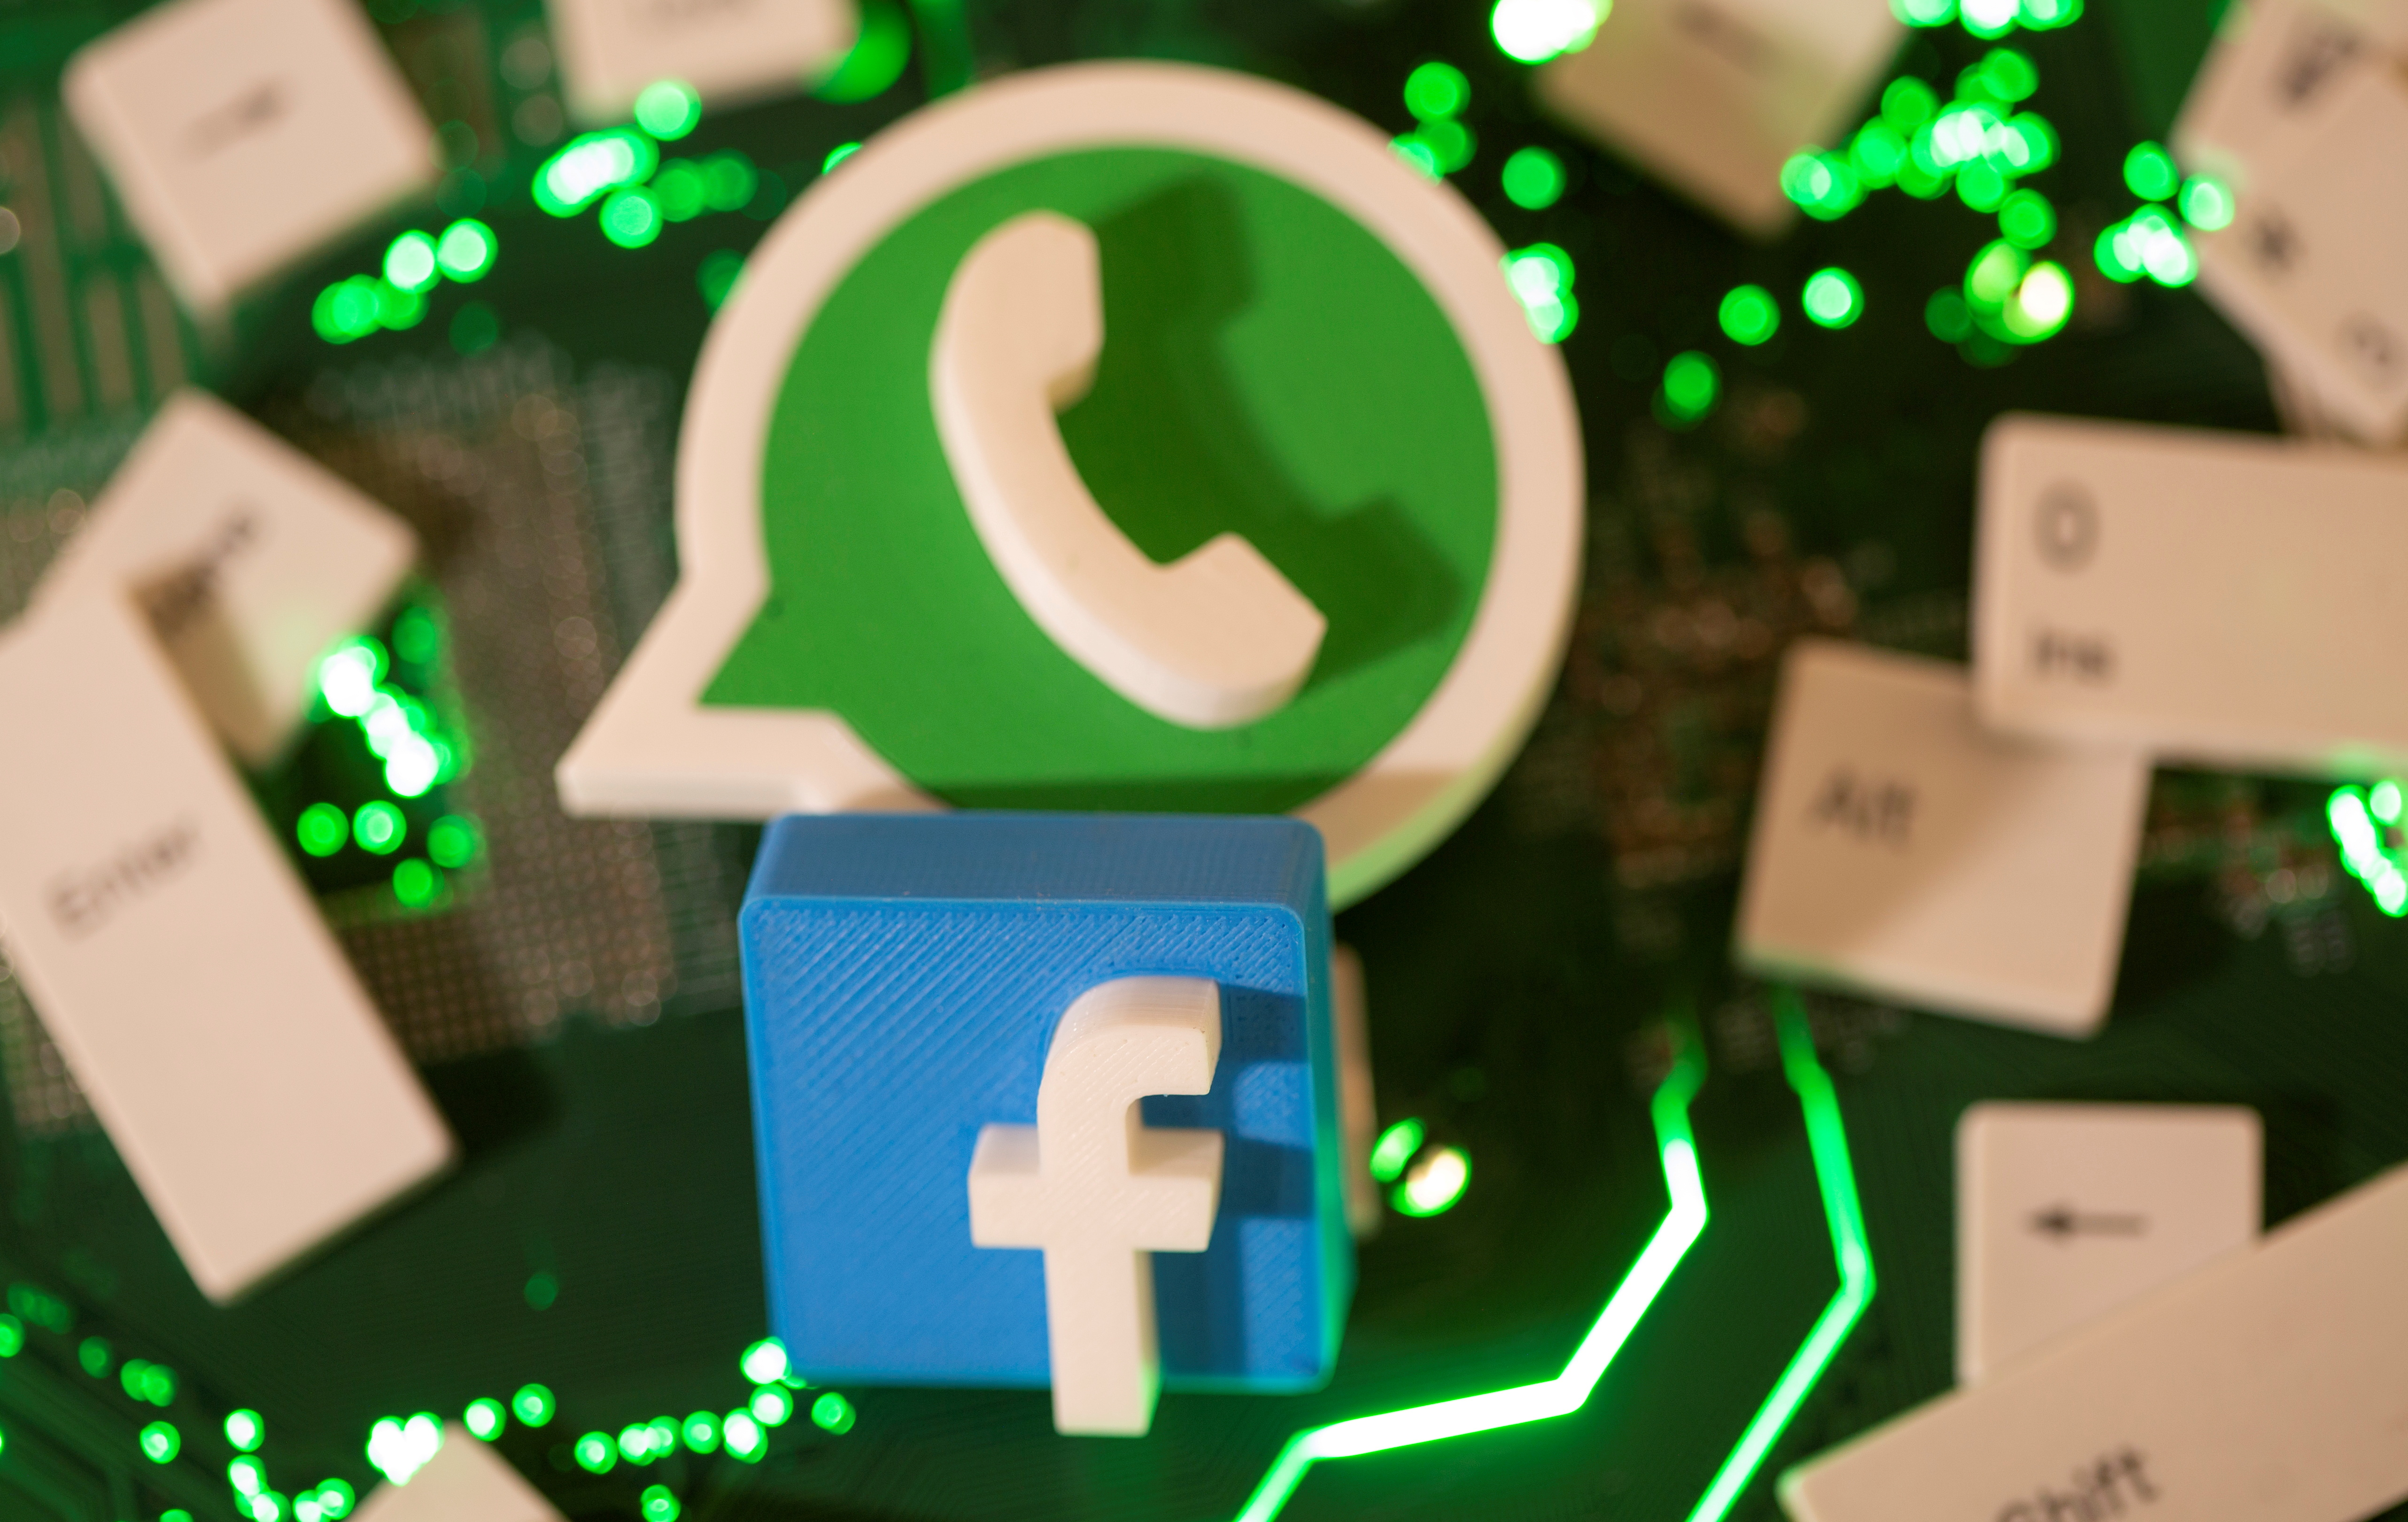 3D printed Facebook and WhatsApp logos and keyboard buttons are placed on a computer motherboard in this illustration taken January 21, 2021. REUTERS/Dado Ruvic/Illustration